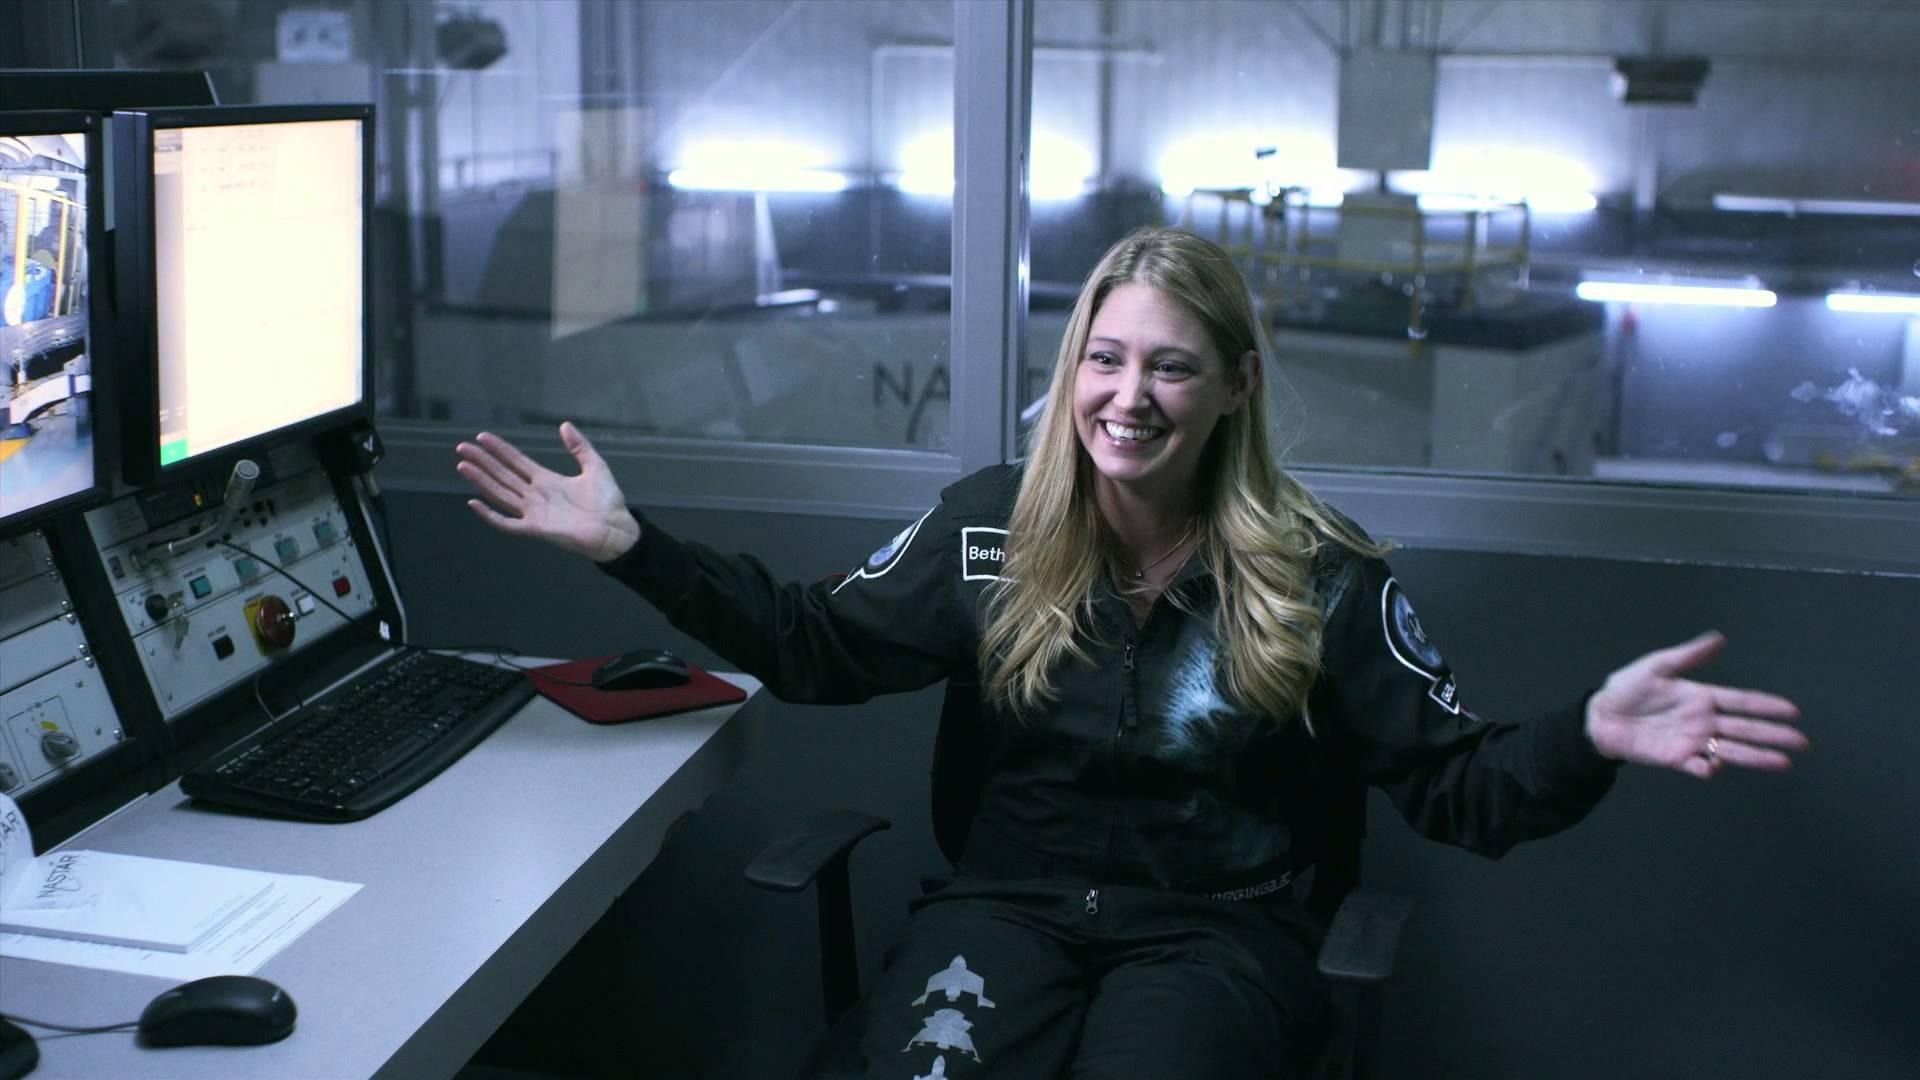 Former NASA engineer Beth Moses is chief astronaut instructor at Virgin Galactic, the world's first commercial spaceline. (YouTube / Virgin Galactic)